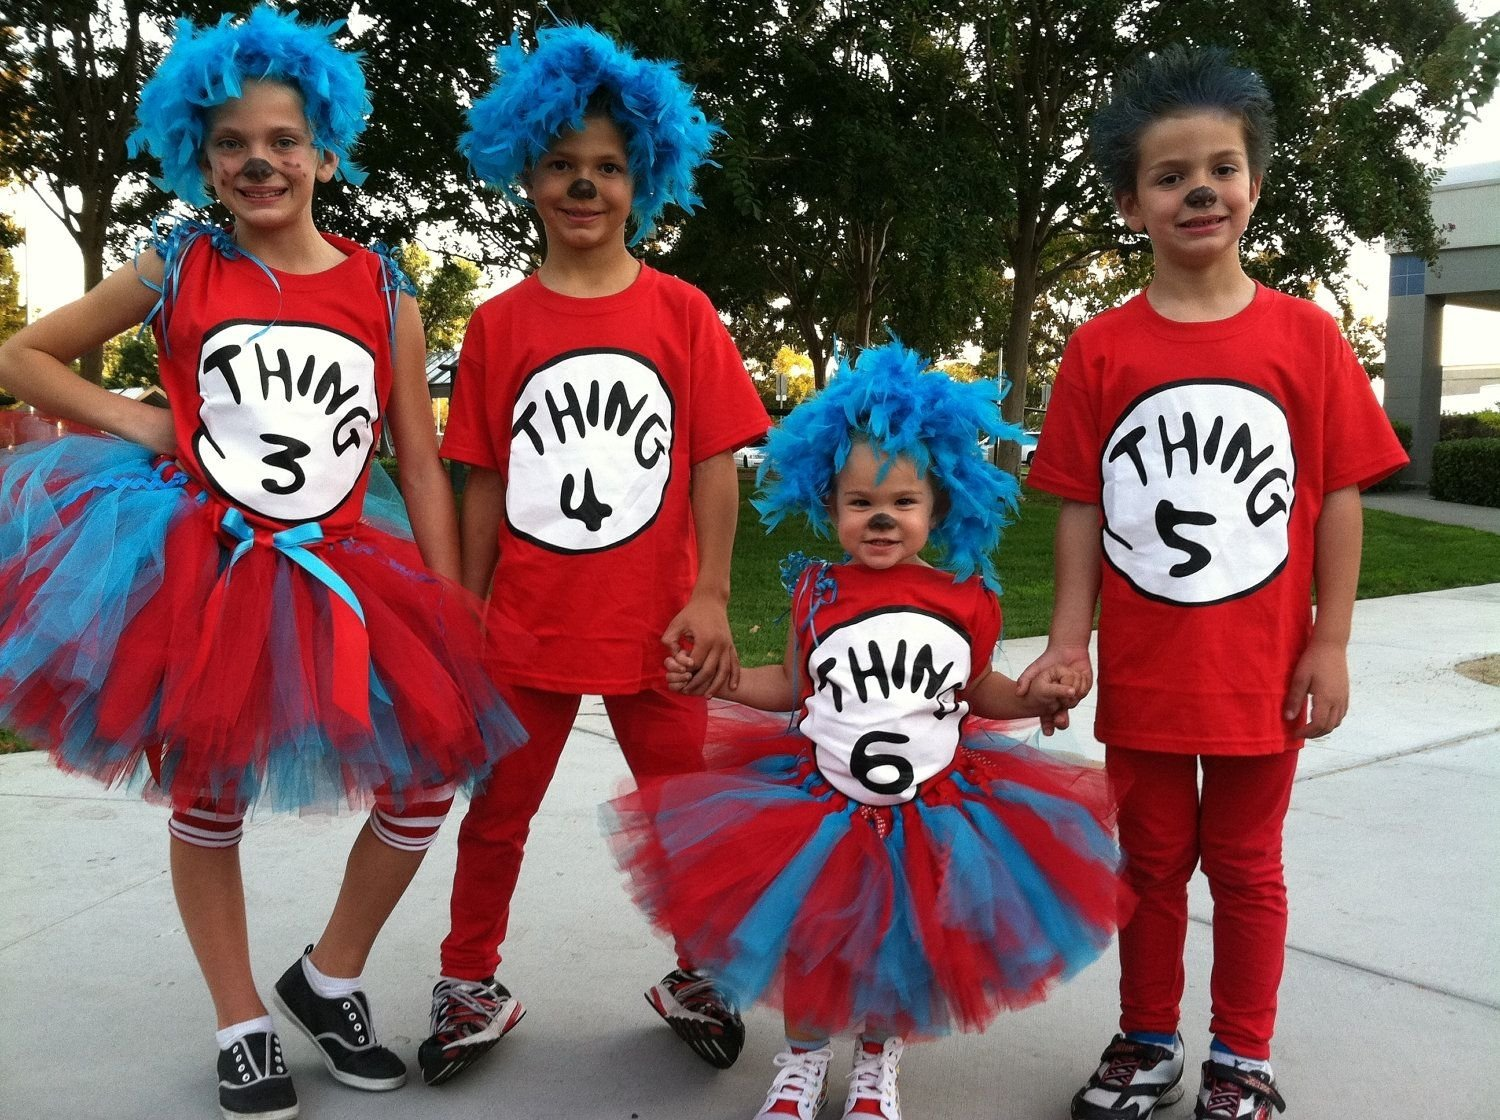 10 Best Group Costume Ideas For 4 People adorable one year old thing 1 and three year old thing 2 costumes